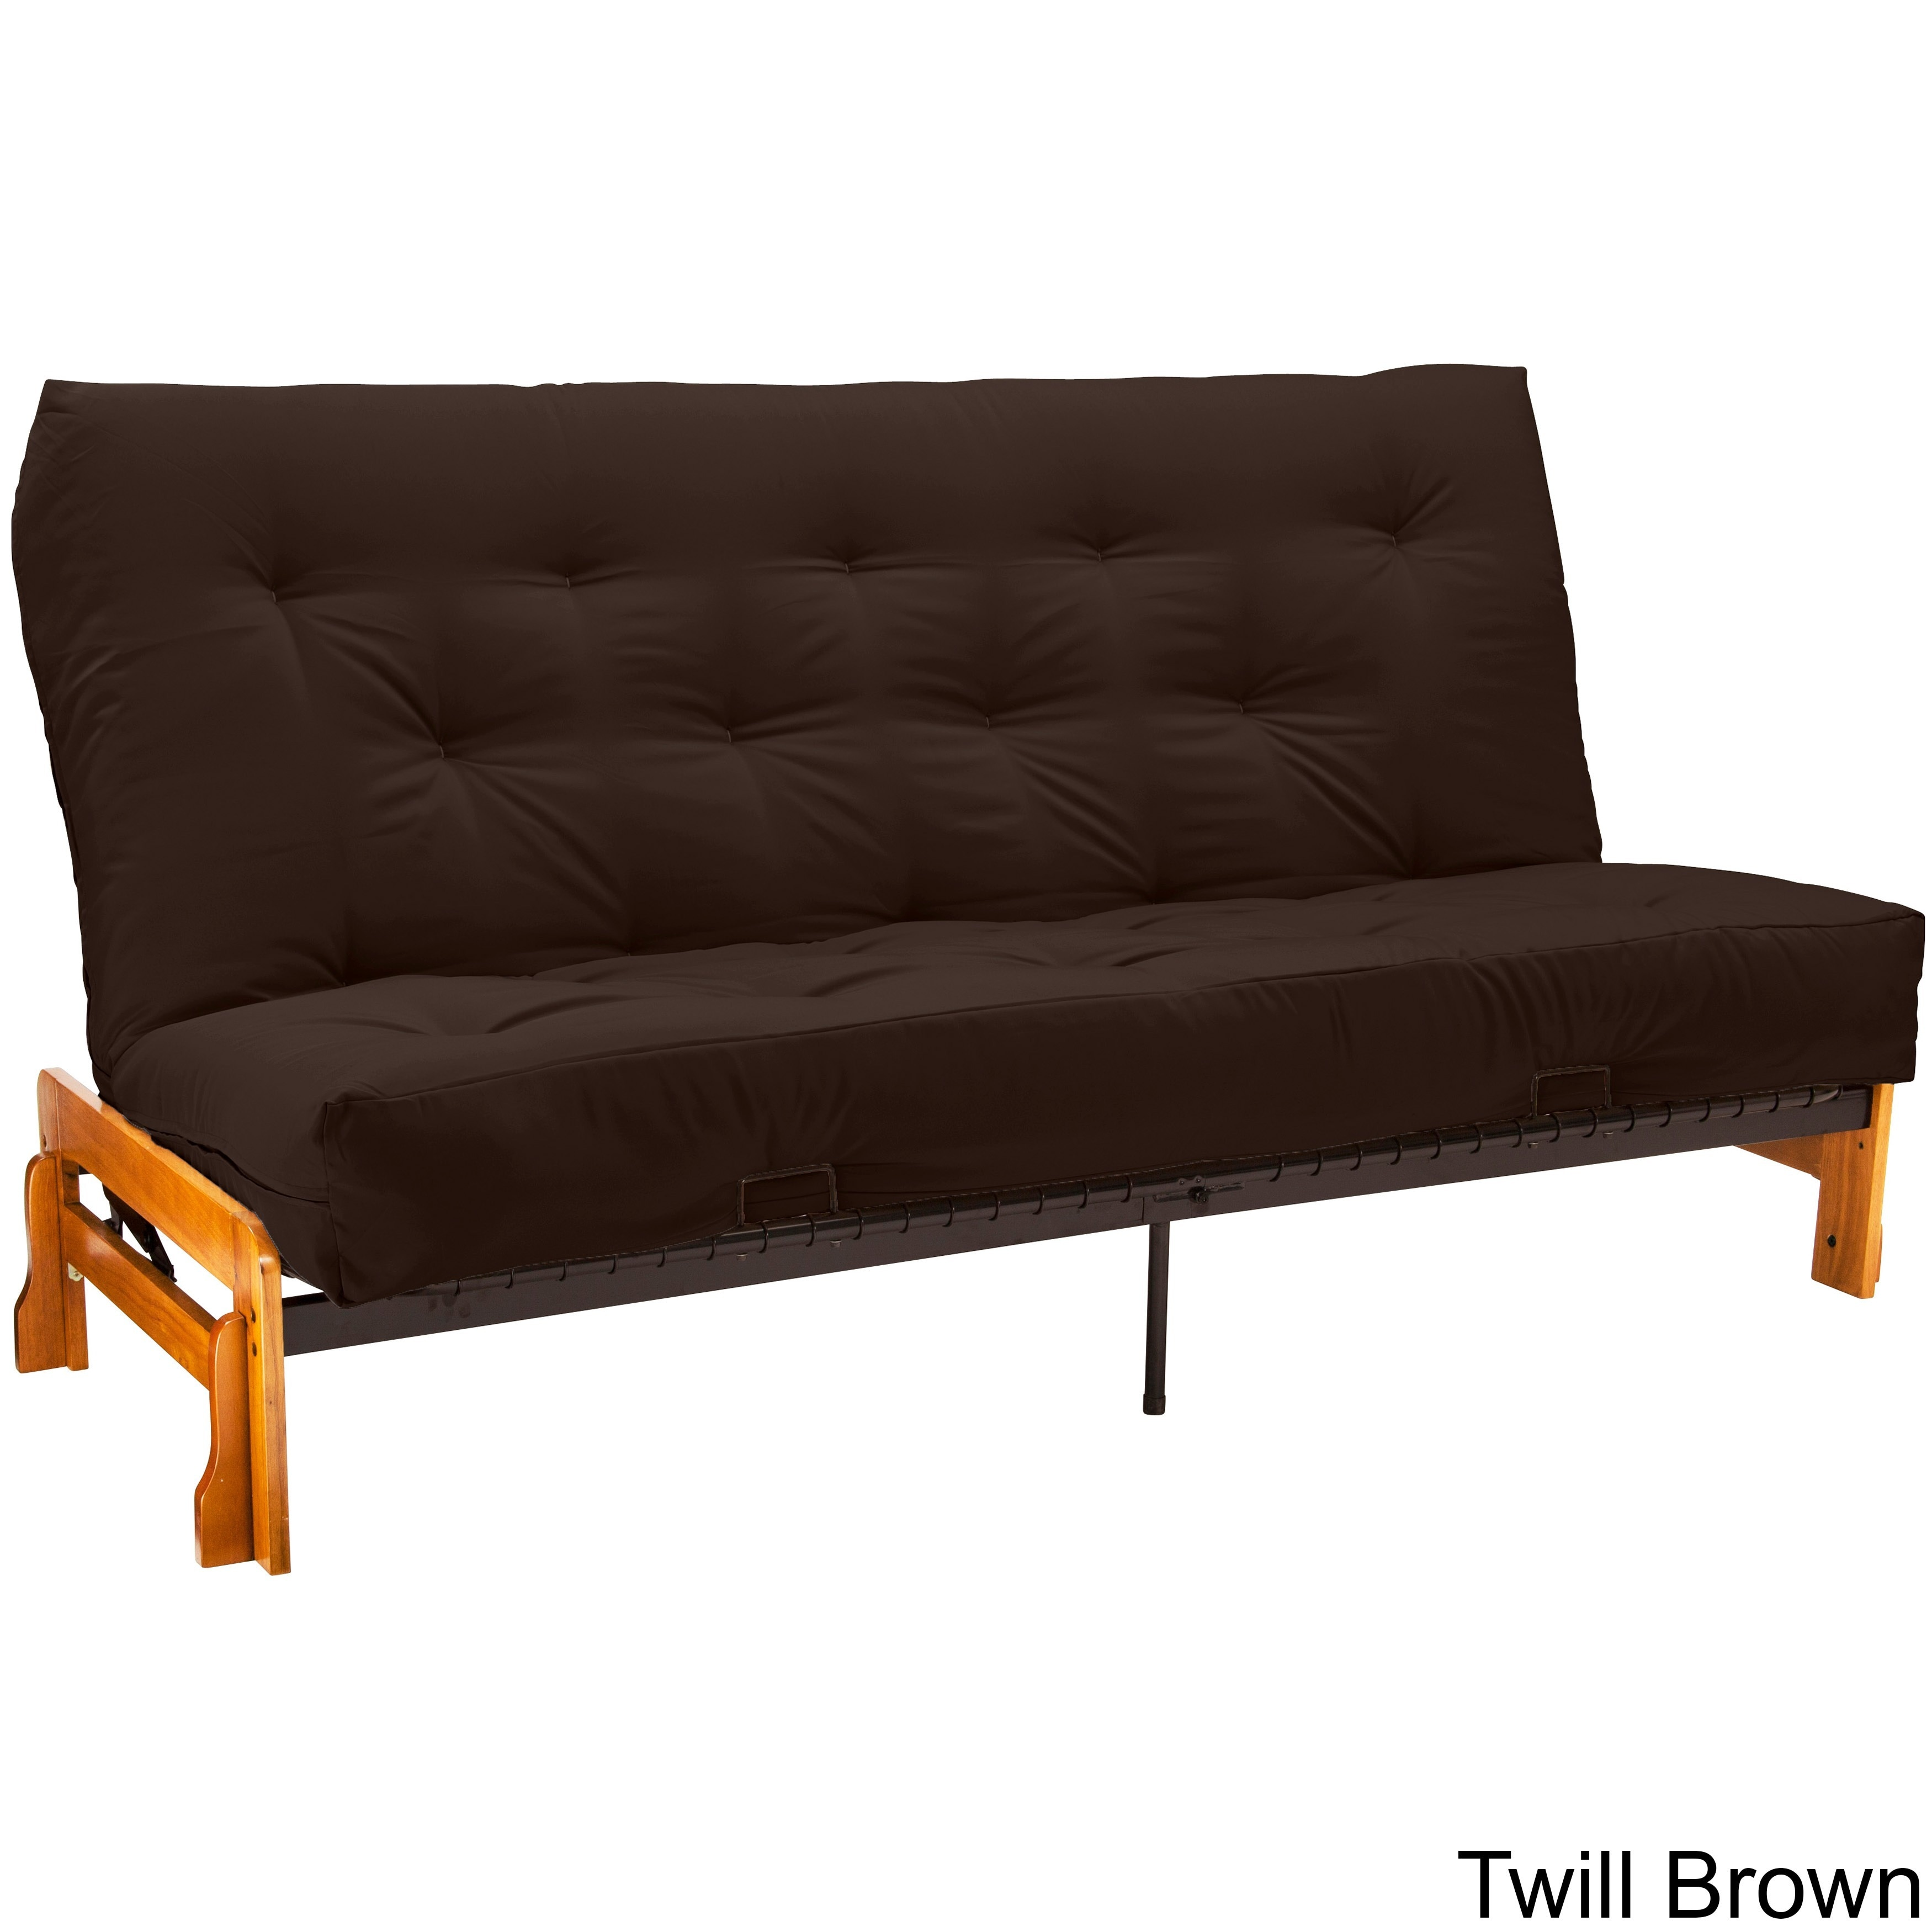 inch monterey today futons home sofa suede product bed garden hardwood shipping free futon overstock somette queen size